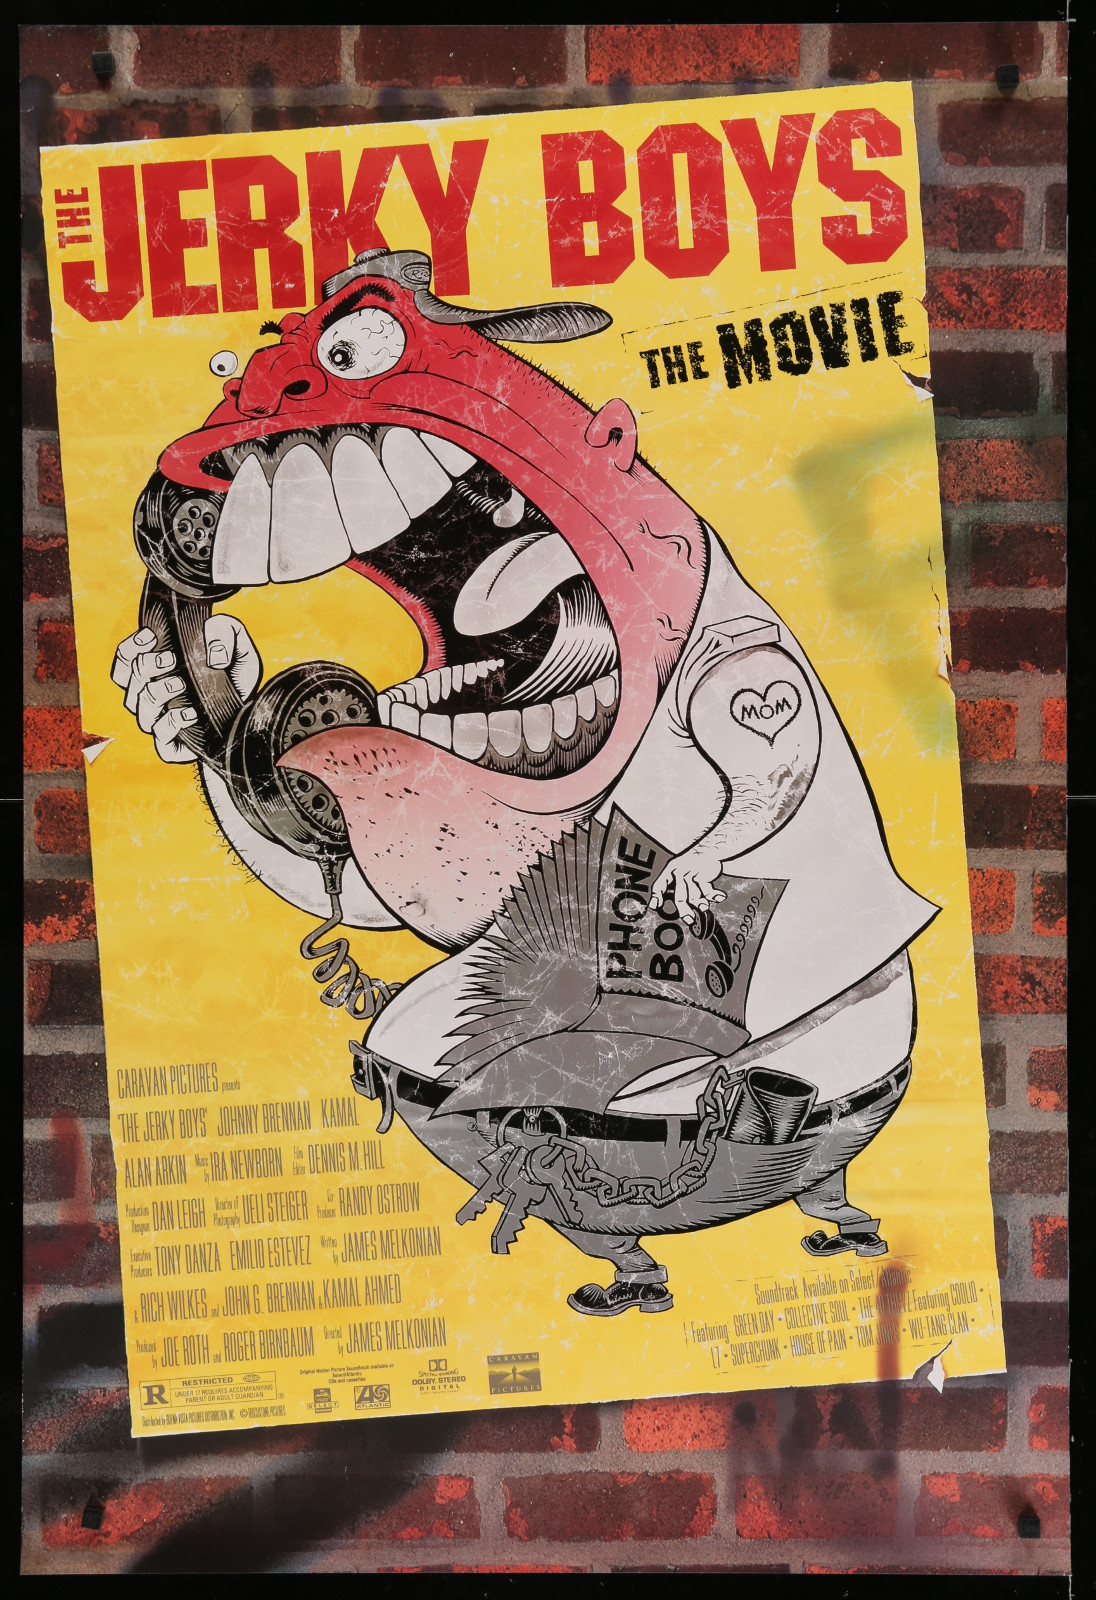 The Jerky Boys The Movie 2A366 A Part Of A Lot 29 Unfolded Double-Sided 27X40 One-Sheets '90S-00S Great Movie Images!